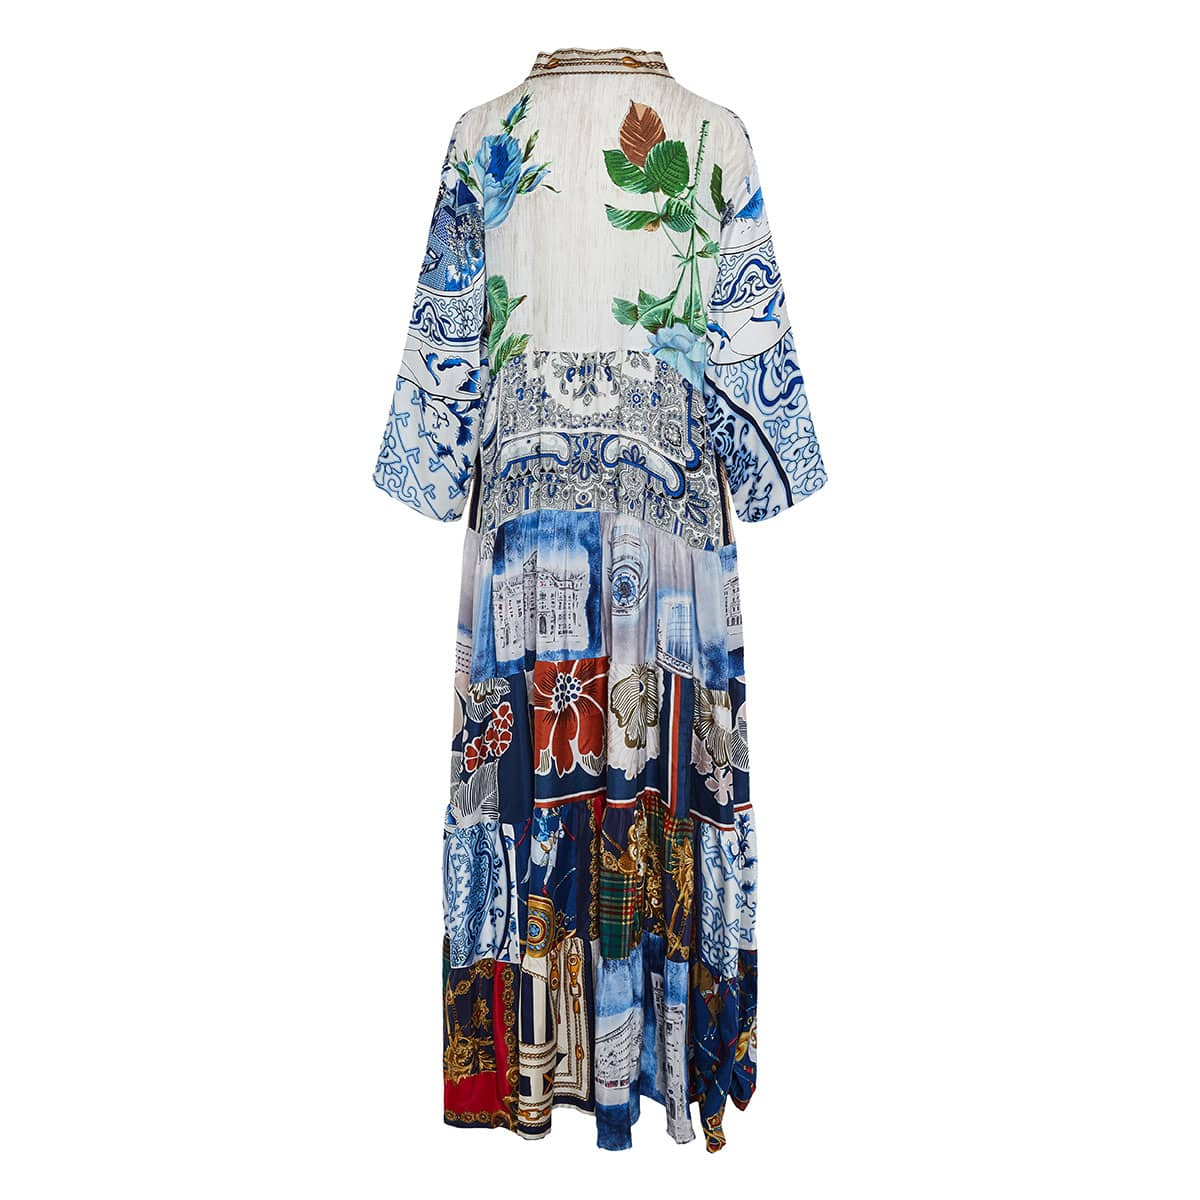 Vintage-scarves patchwork tiered dress